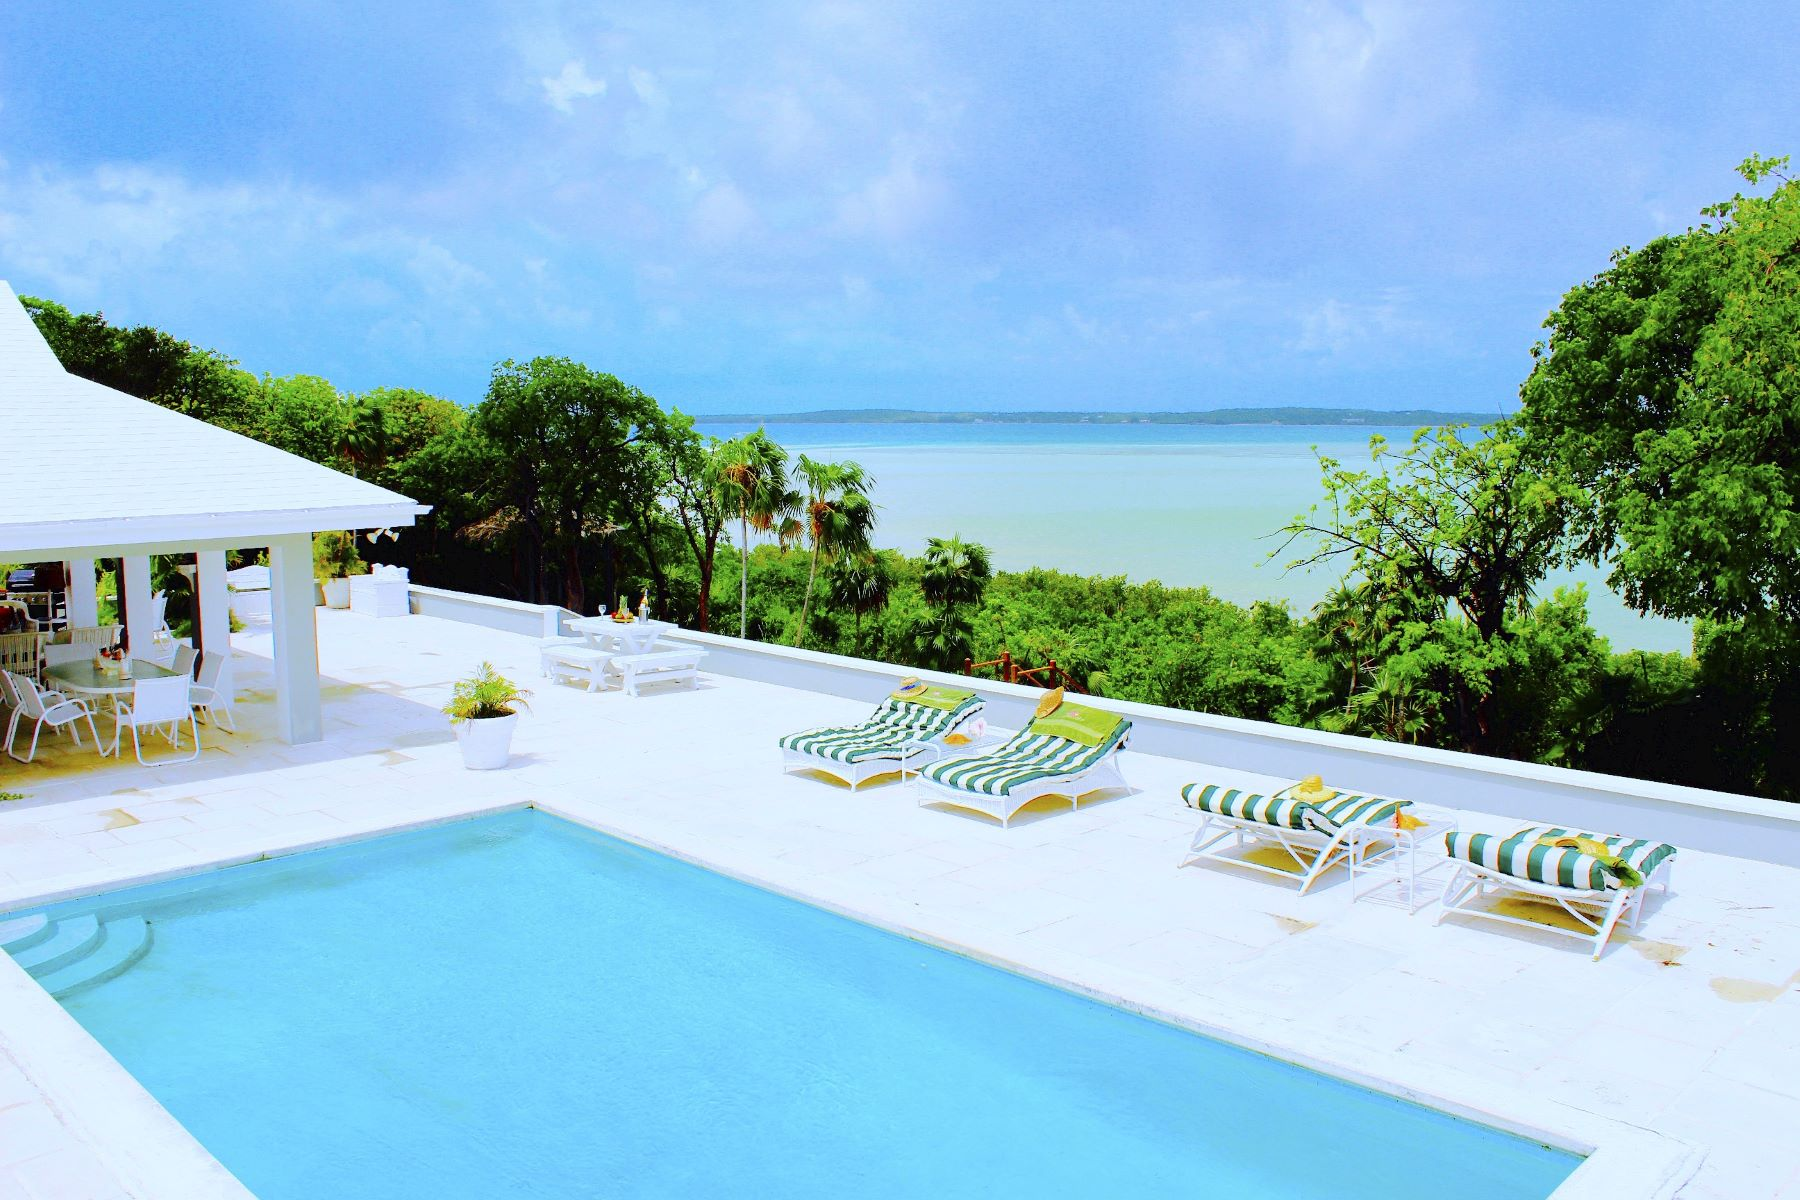 Single Family Home for Sale at GUMELEMI BLUFF Harbour Estate Harbour Island, Eleuthera Bahamas